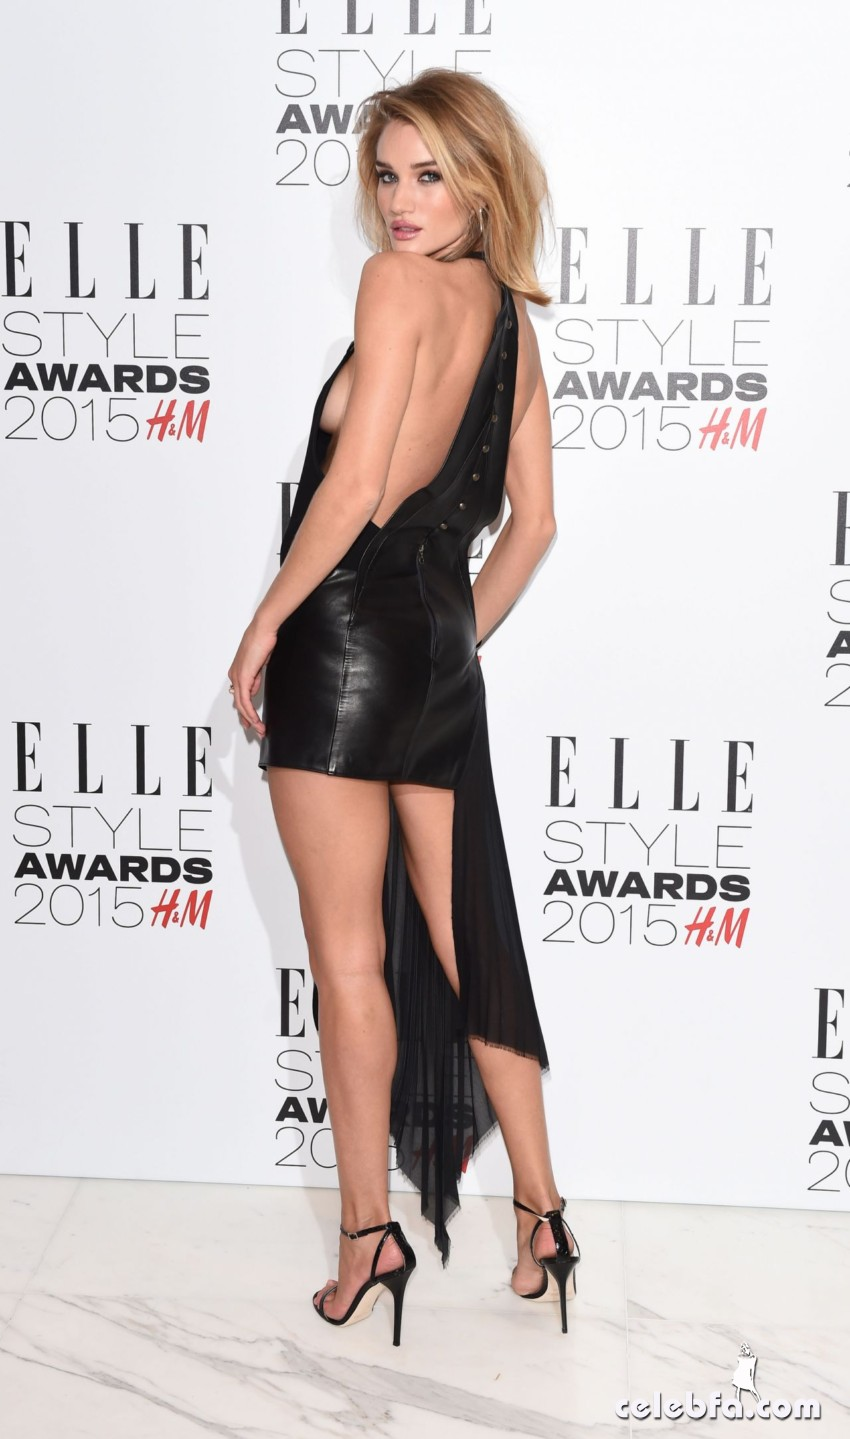 rosie-huntington-whiteley-2015-elle-style-awards-in-london (5)